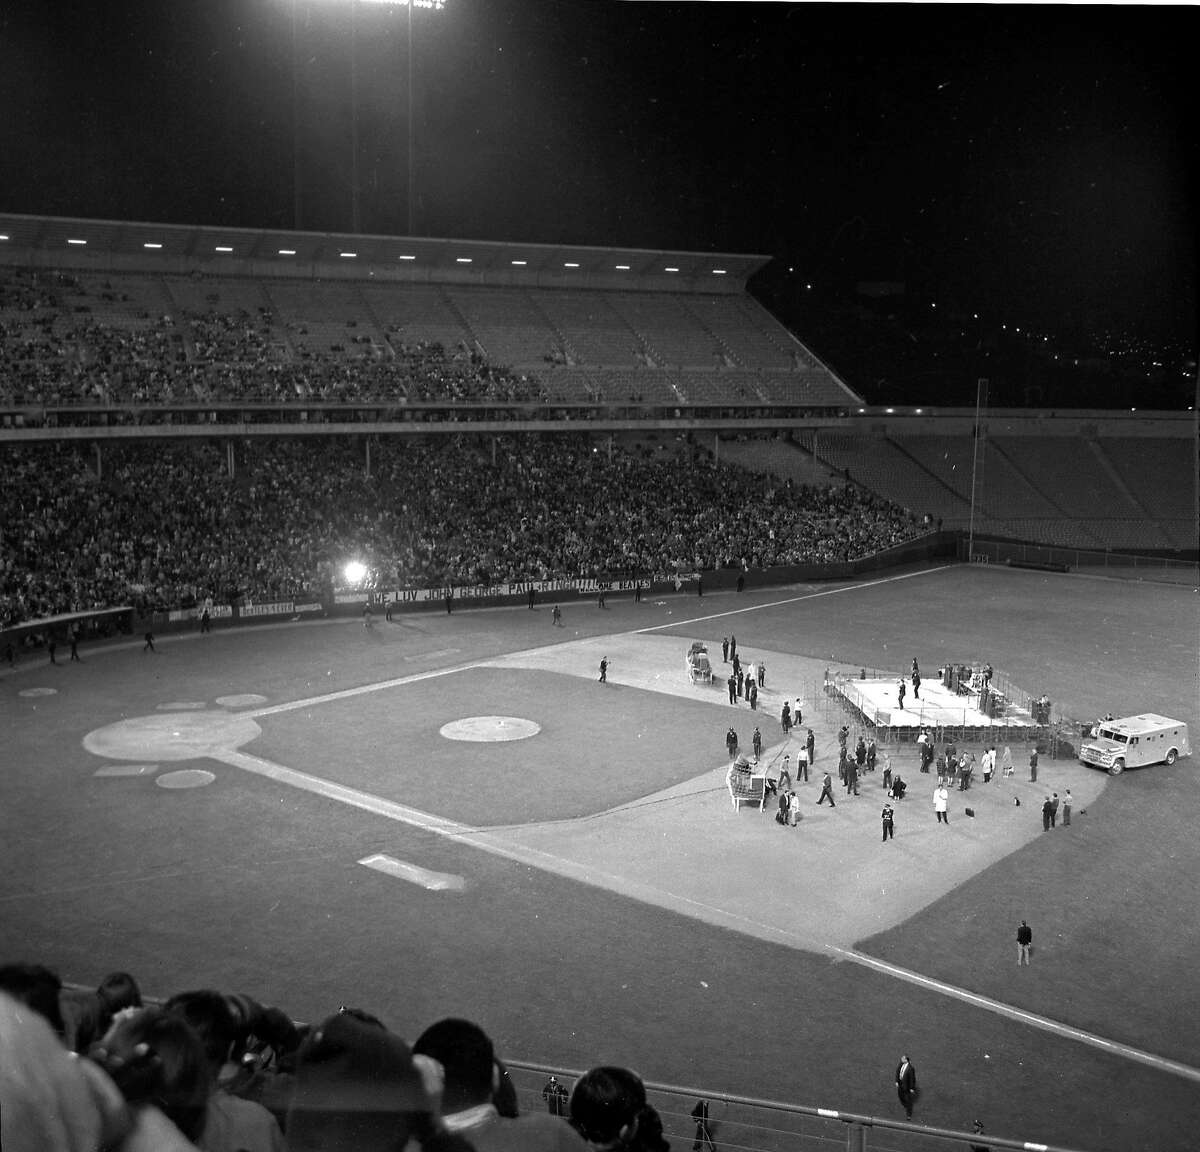 The Beatles perform live at Candlestick Park in San Francisco on August 30, 1966.